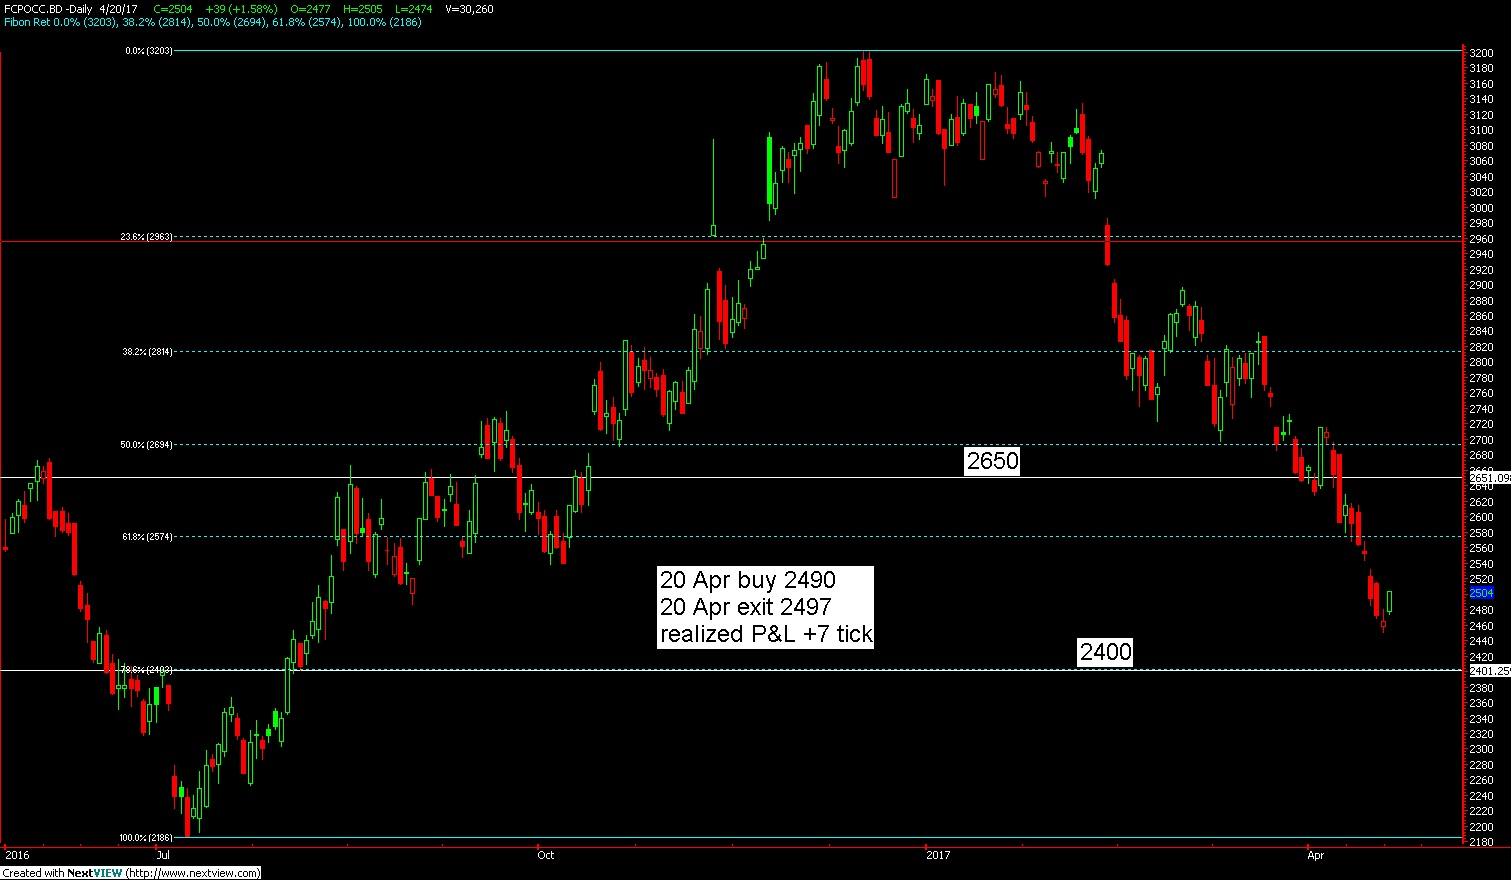 How to trade oil futures options